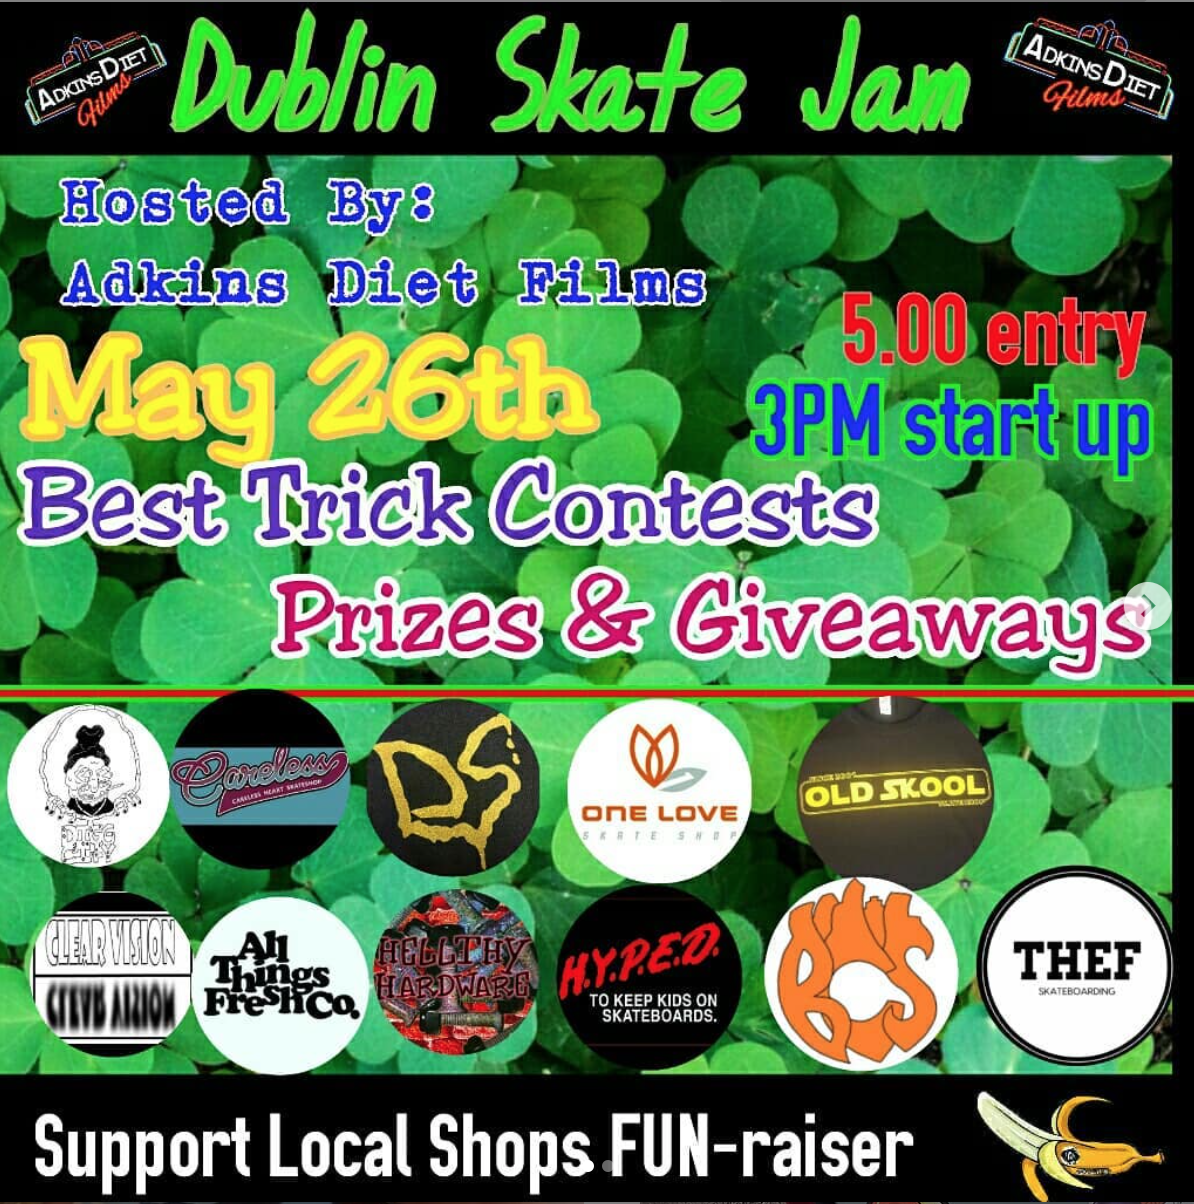 Dublin Skate Jam - Postponed to July 21st. Stay tuned for updates.Support local shops!